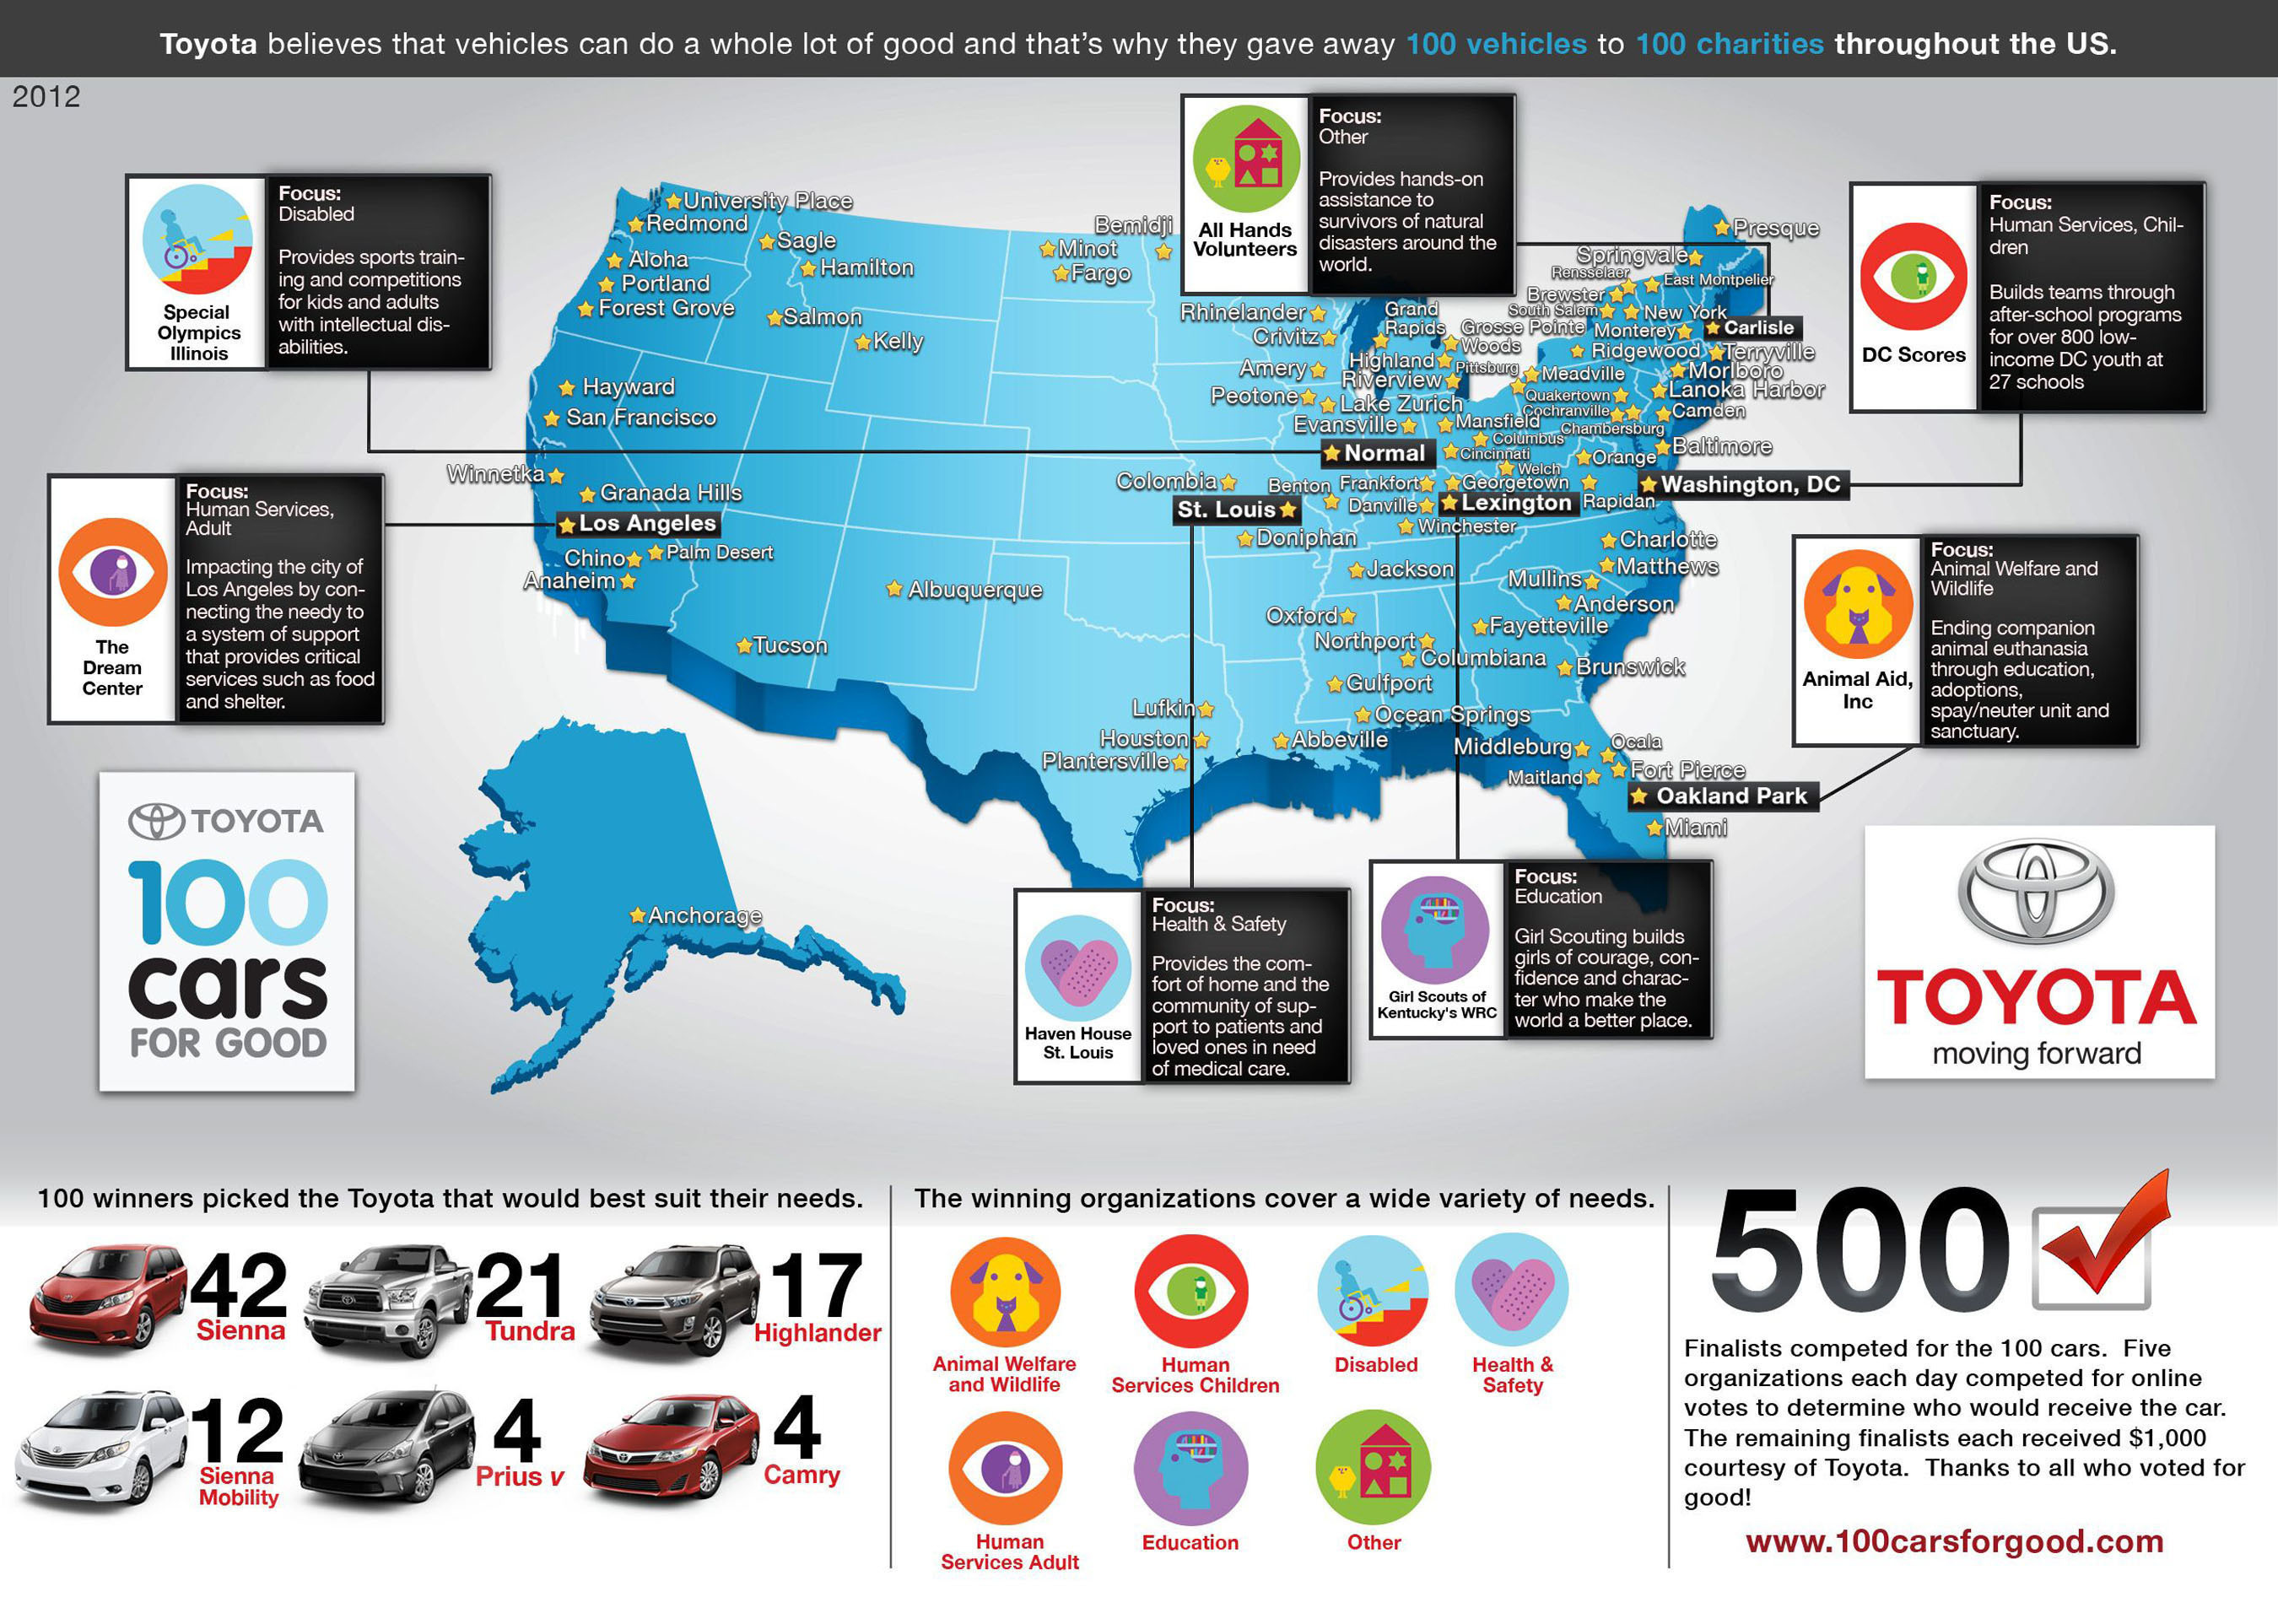 Final 25 winning organizations, covering a wide variety of needs, announced in Toyota's 100 Cars for Good ...